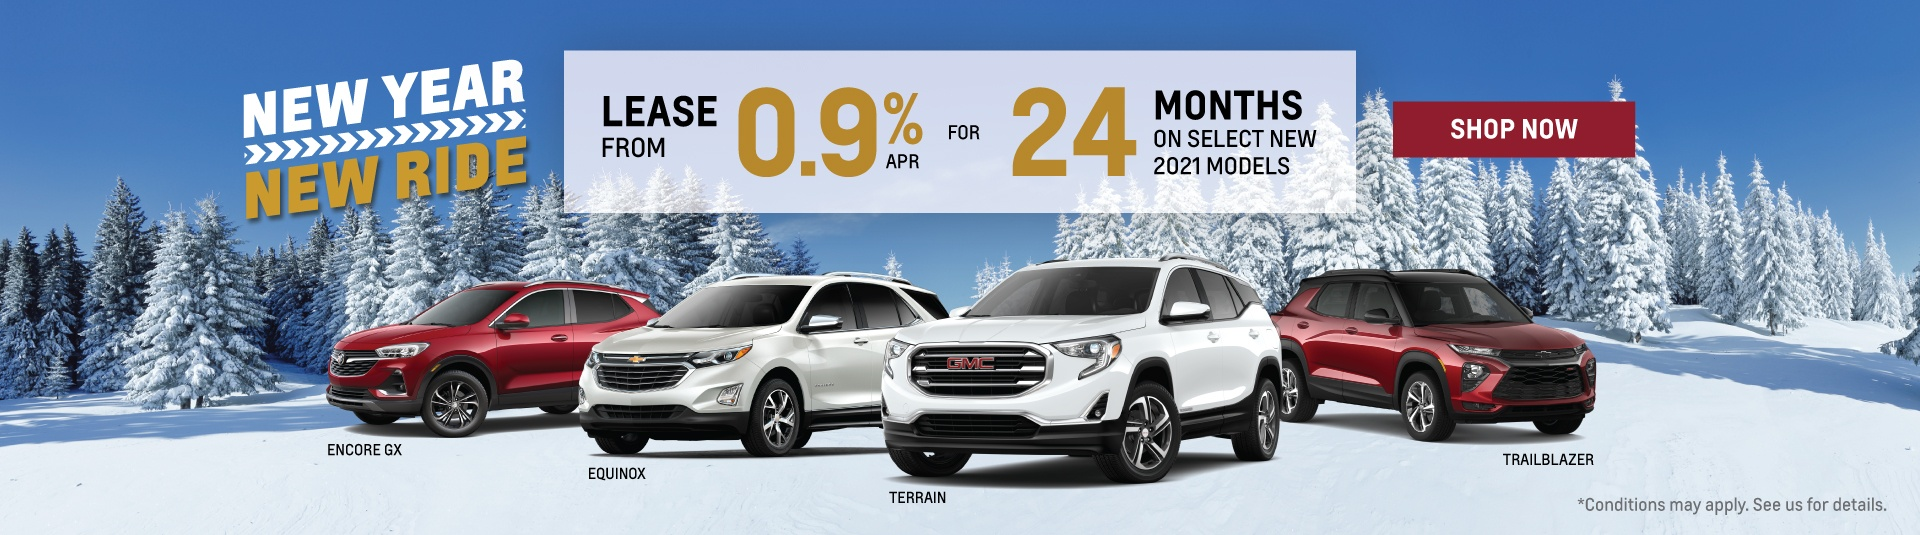 Chevrolet, Buick and GMC 2021 SUV Offers in Etobicoke